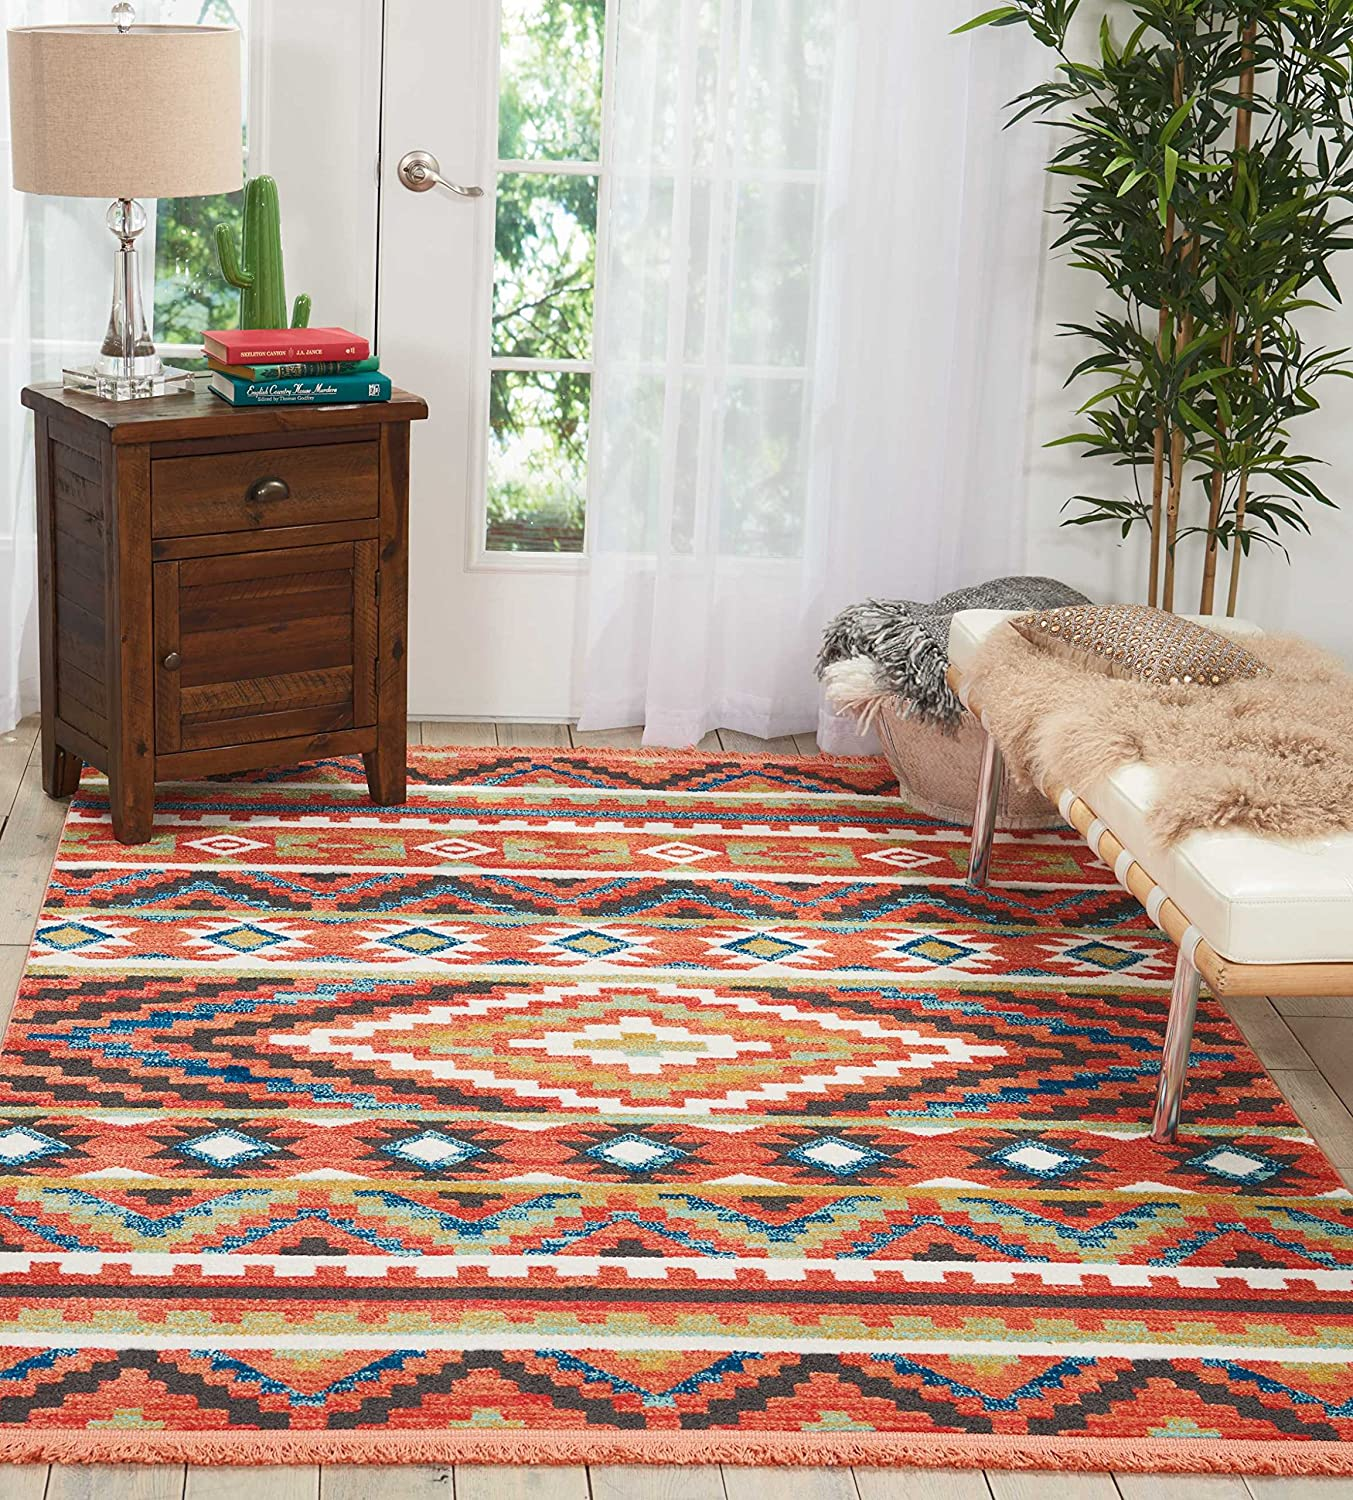 """Nourison Tribal Decor Traditional Colorful Orange Area Rug 5 Feet 3 Inches by 7 Feet 6 Inches, 5'3""""X7'6"""""""